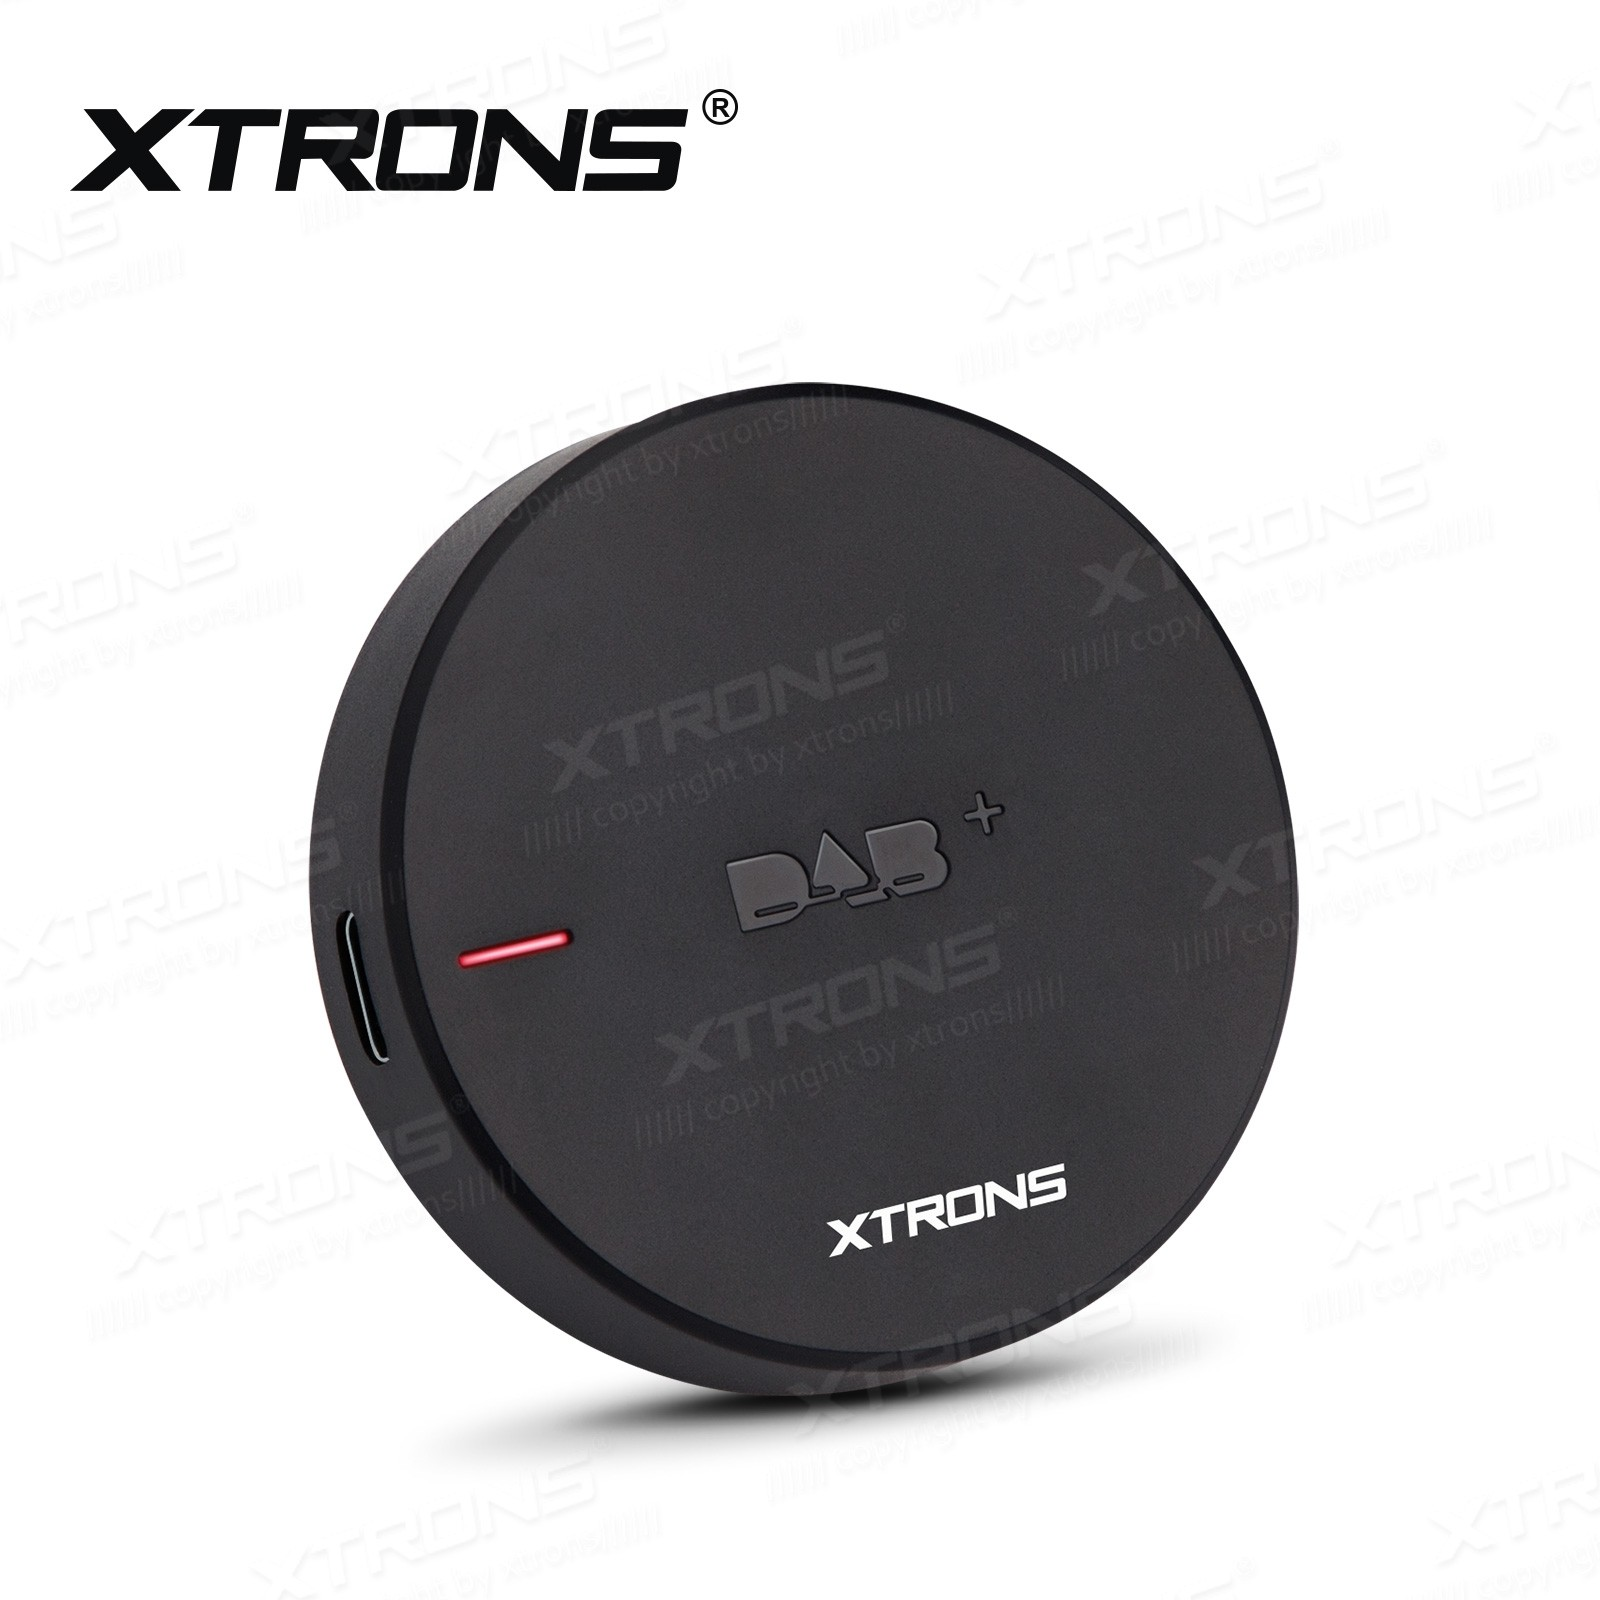 DAB Digital Radio Tuner USB Dongle for Android Car Stereos